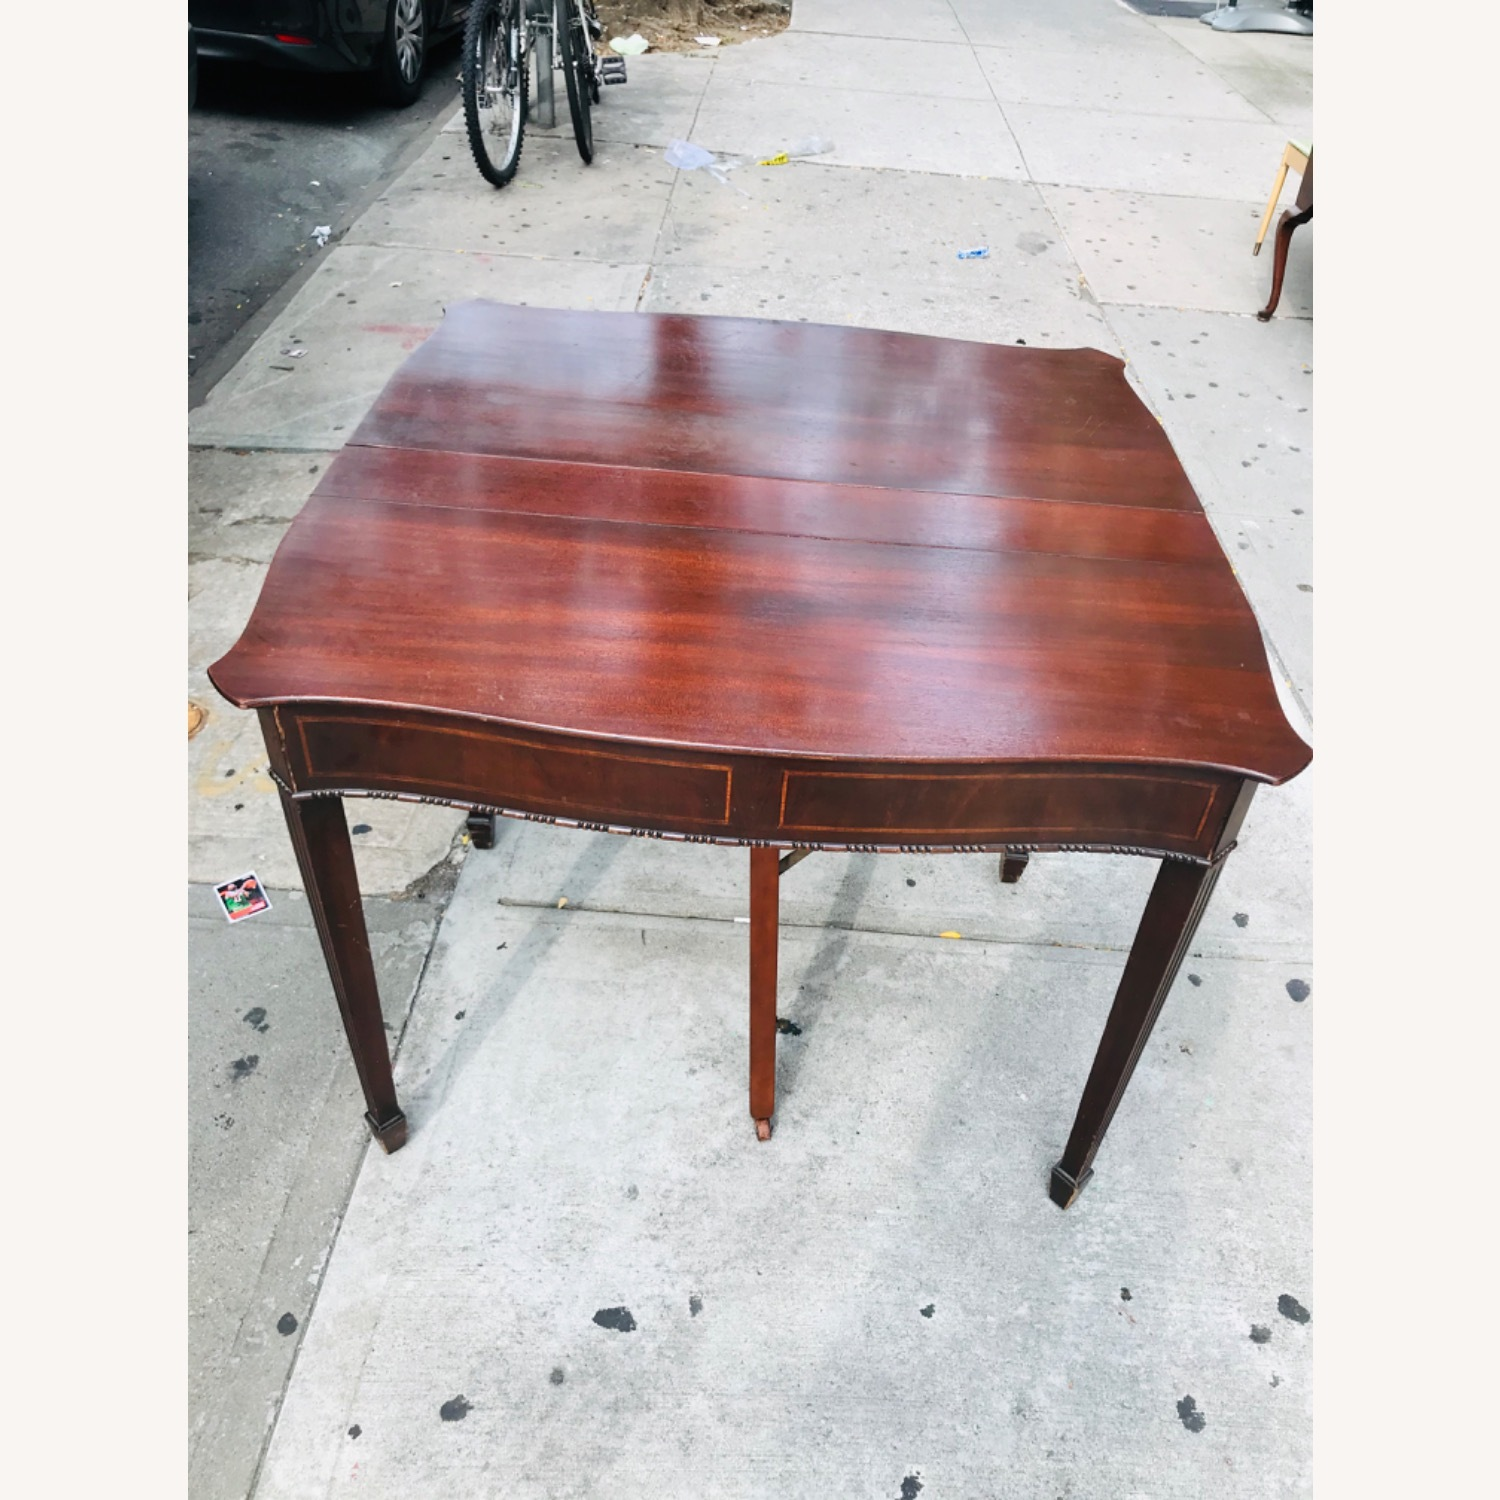 Antique 1920s Mahogany Table w/3 Leaves  - image-28